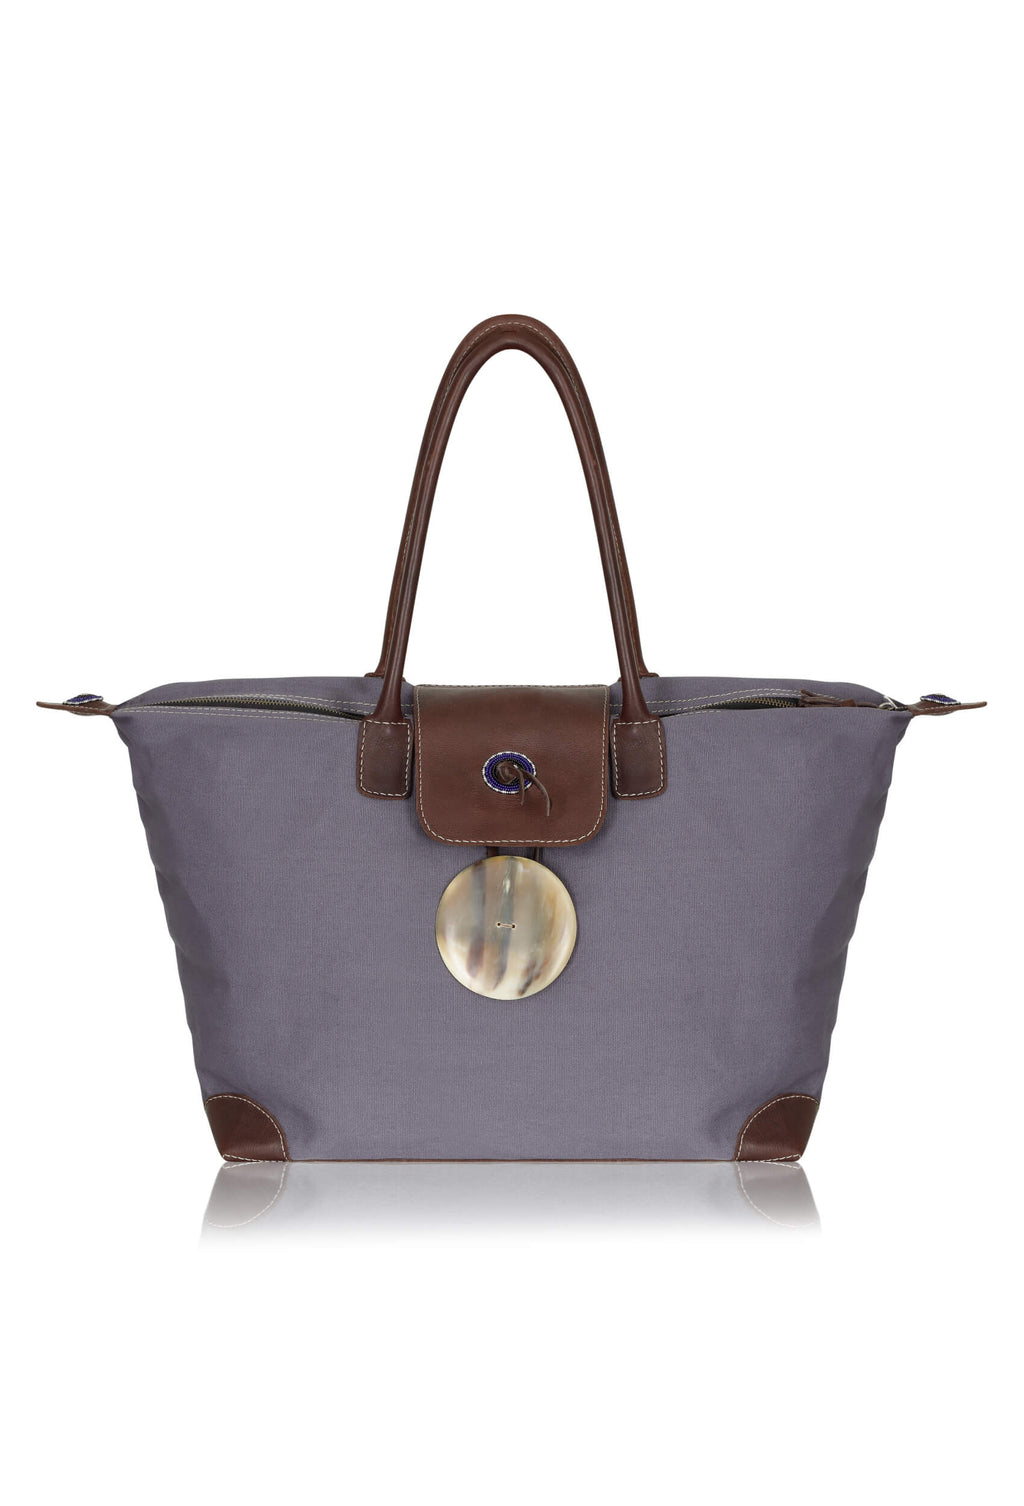 slate-grey-weekend-bag-leather-canvas-luggage